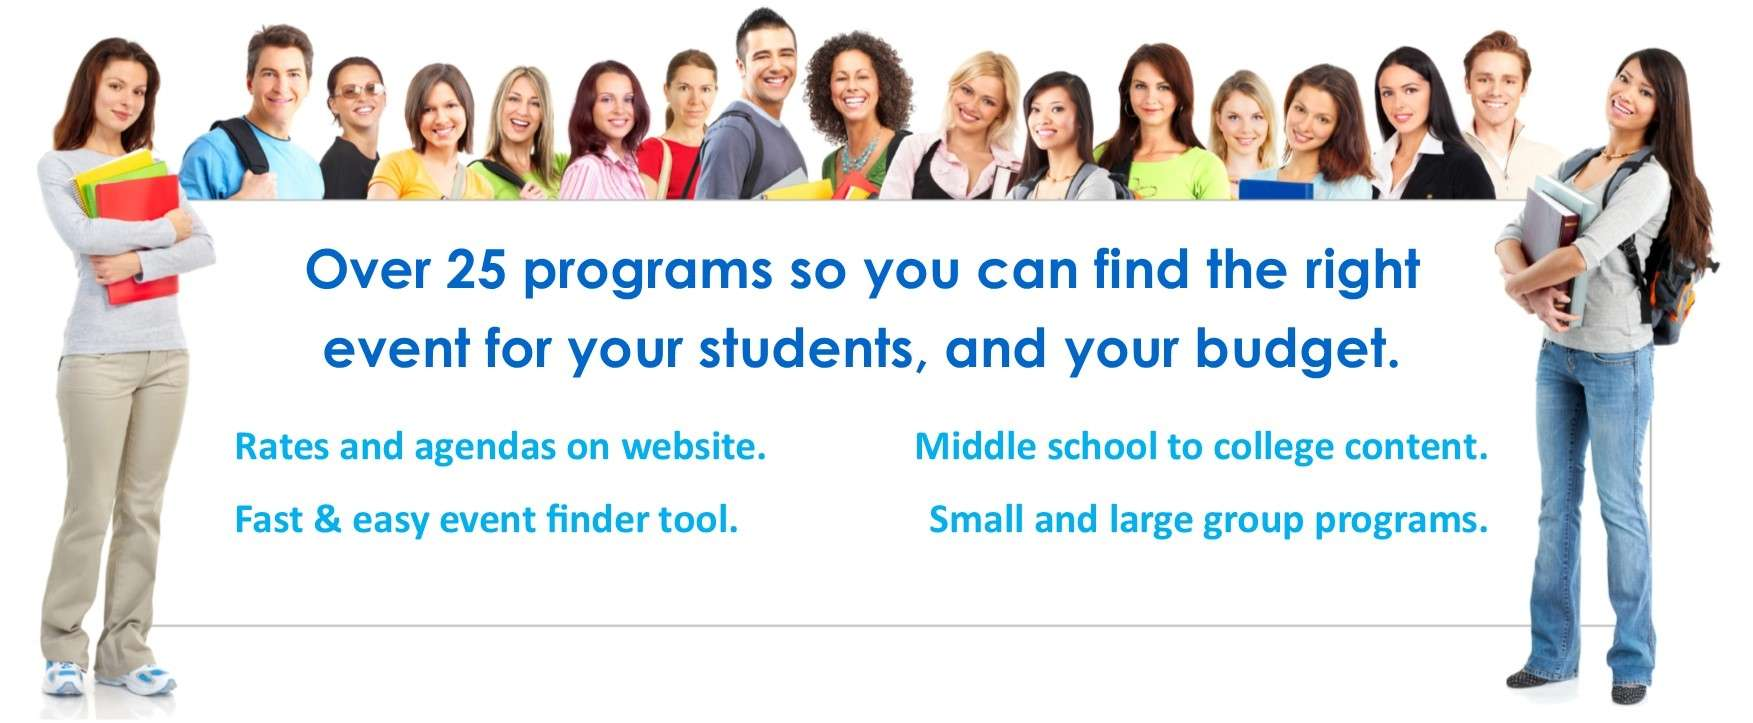 Over 25 programs so you can find the right event for your students and your budget